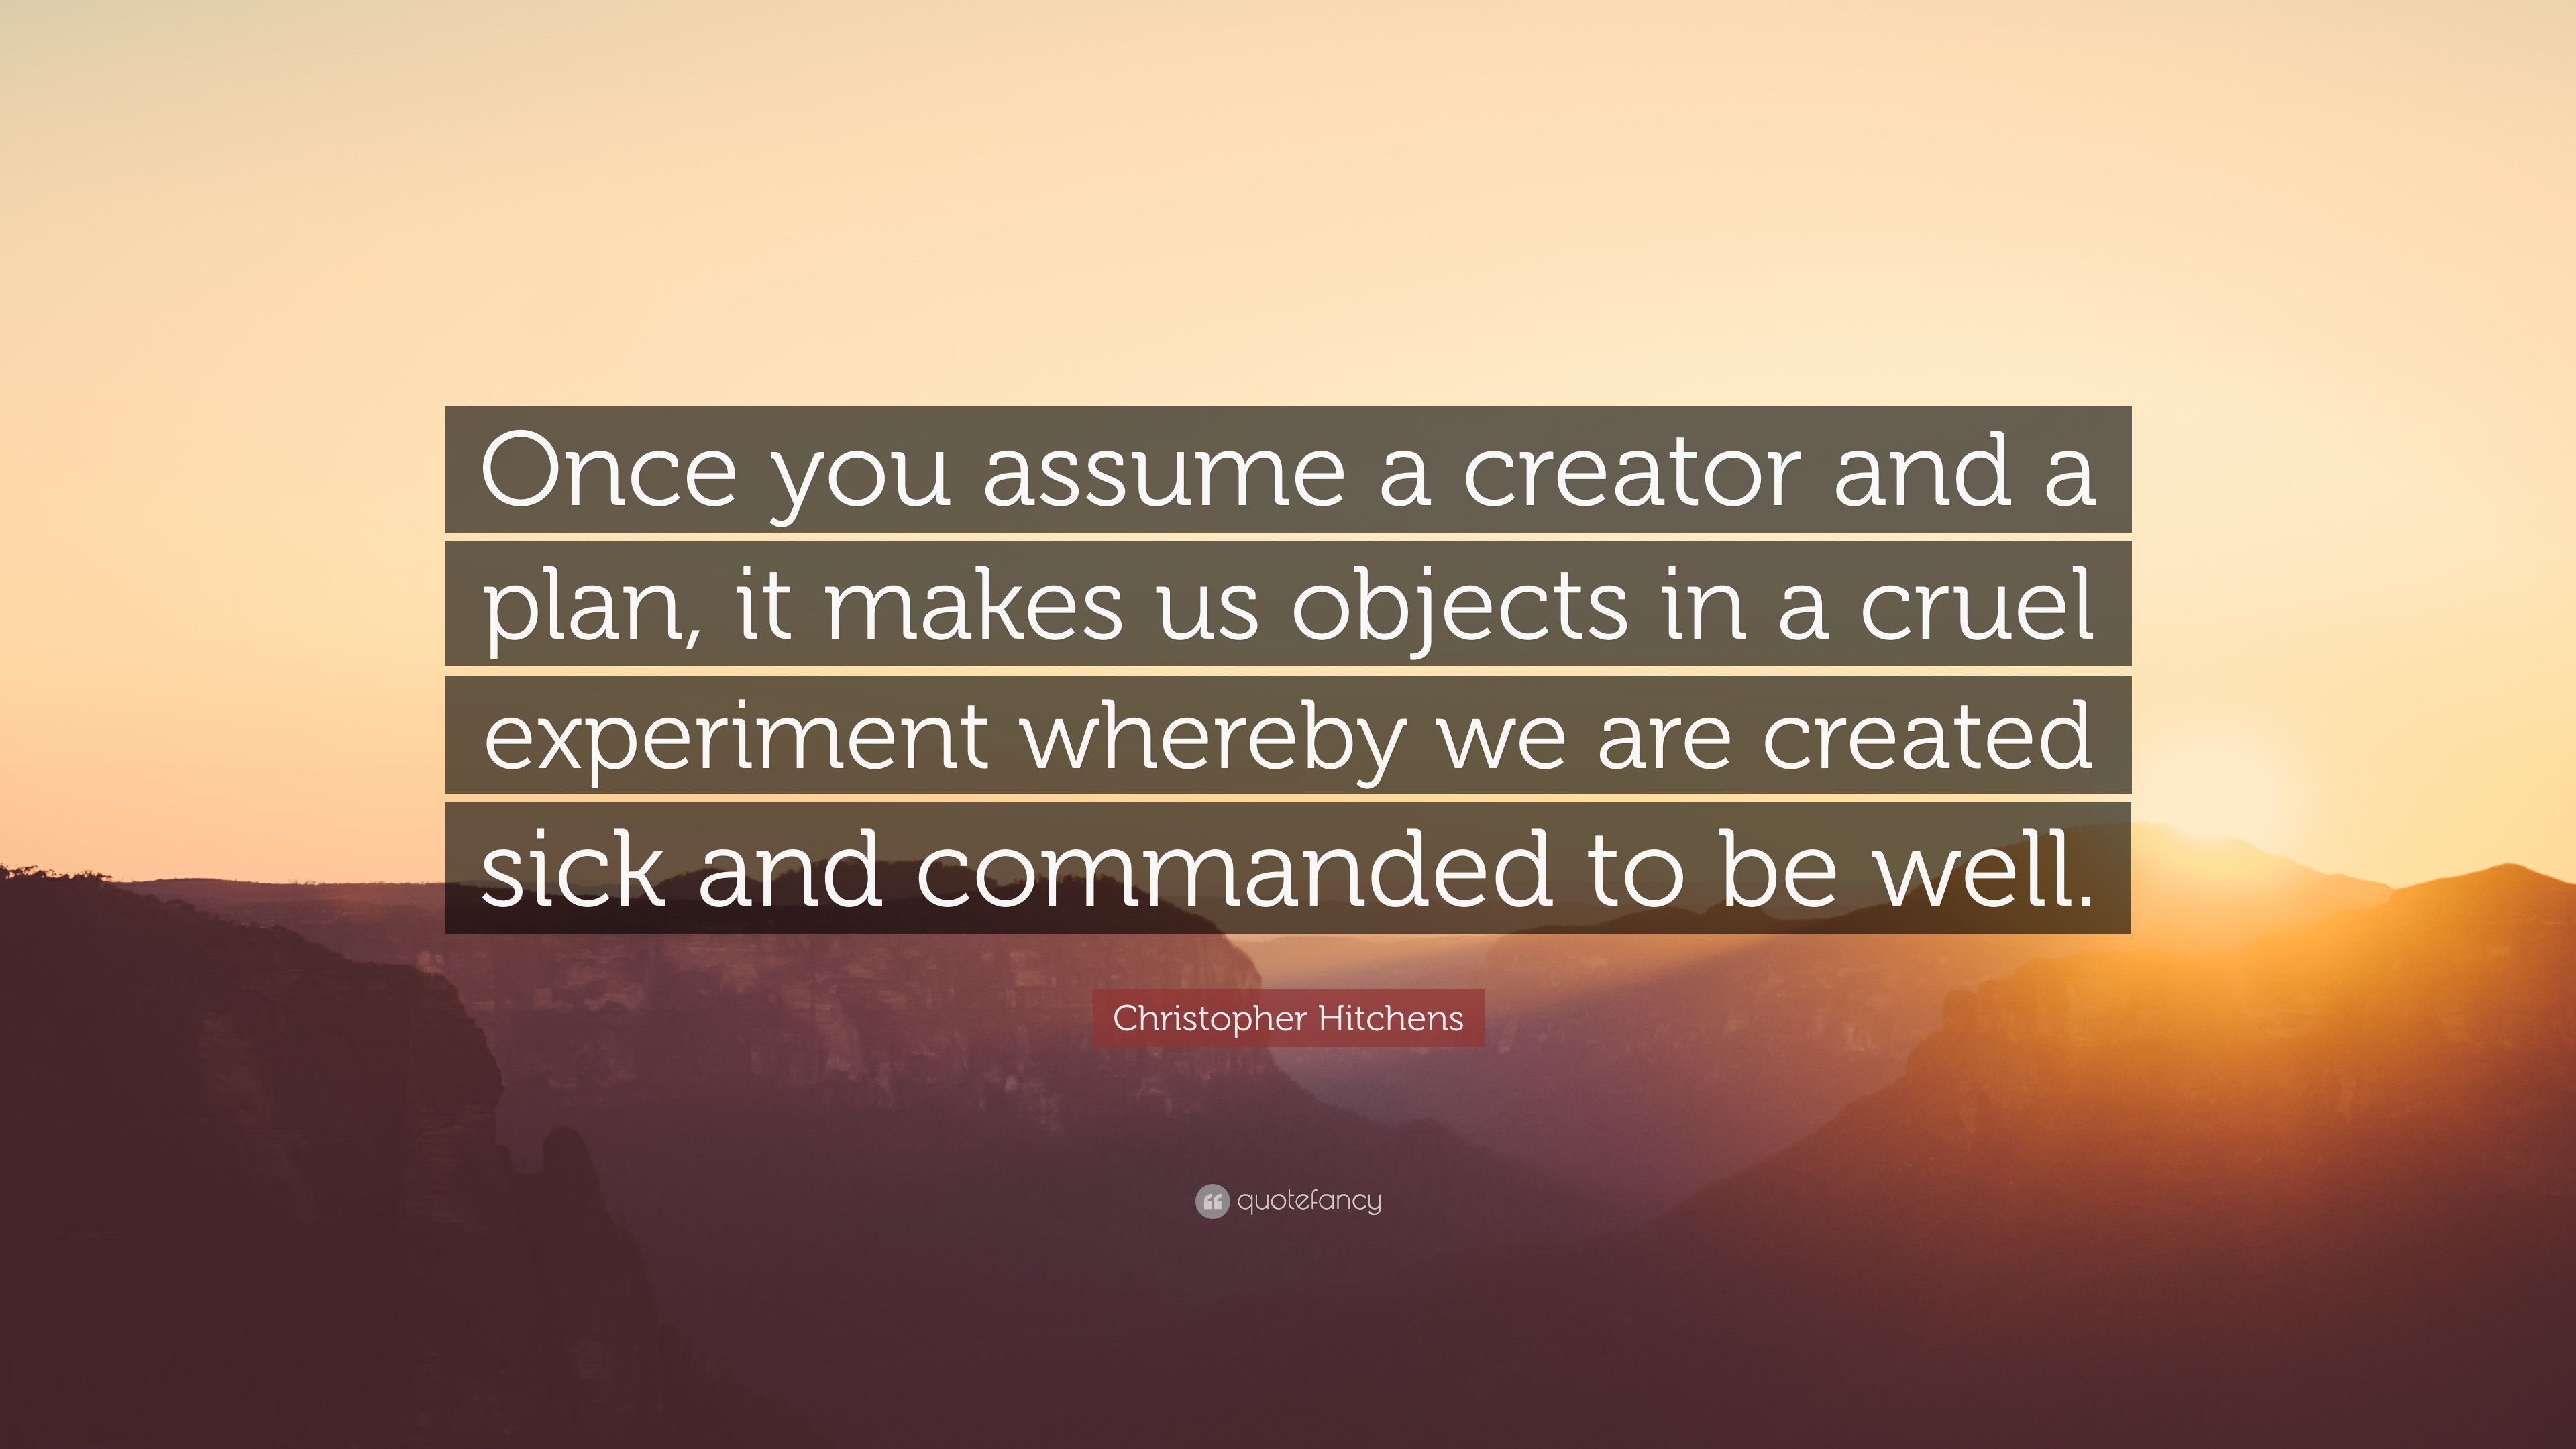 192241-Christopher-Hitchens-Quote-Once-you-assume-a-creator-and-a-plan-it